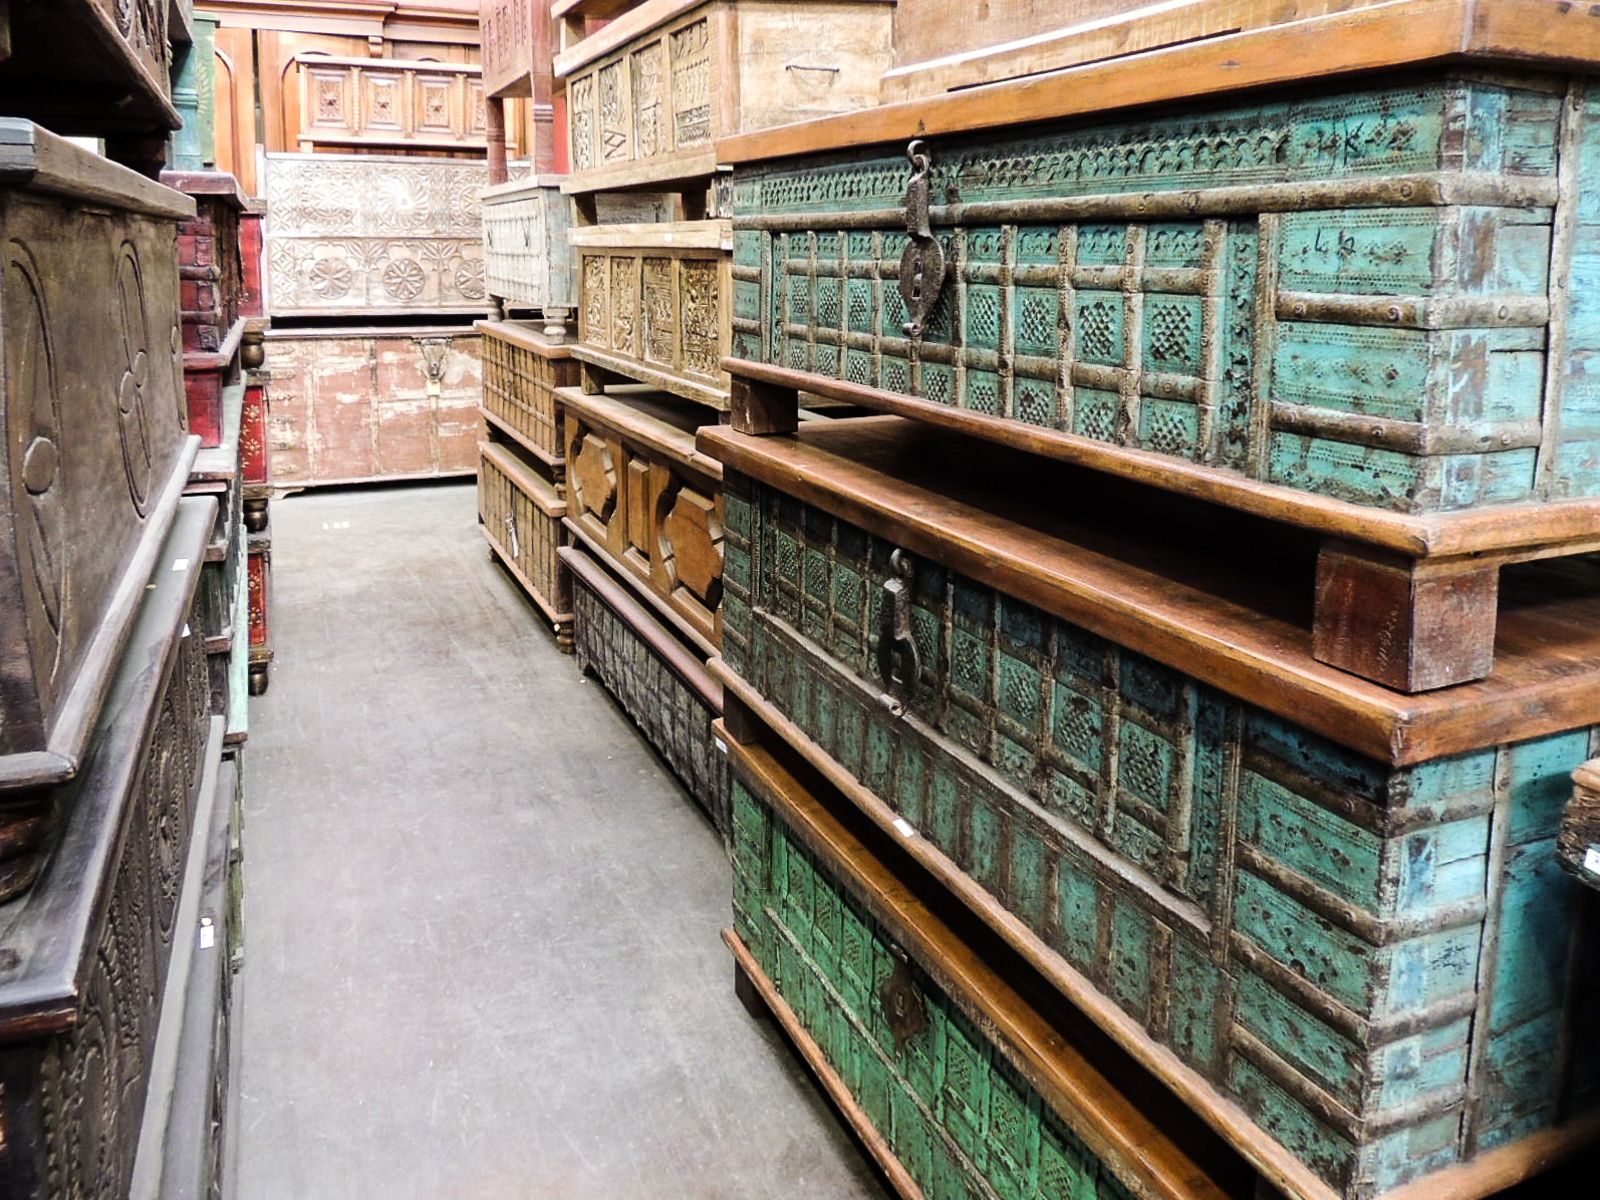 Visit Our Warehouse In Tempe Arizona Trunk Trunks Chest Chests Storage Box Boxes Wood Wooden Aqua Turquoise Old World Furniture Old World Arizona